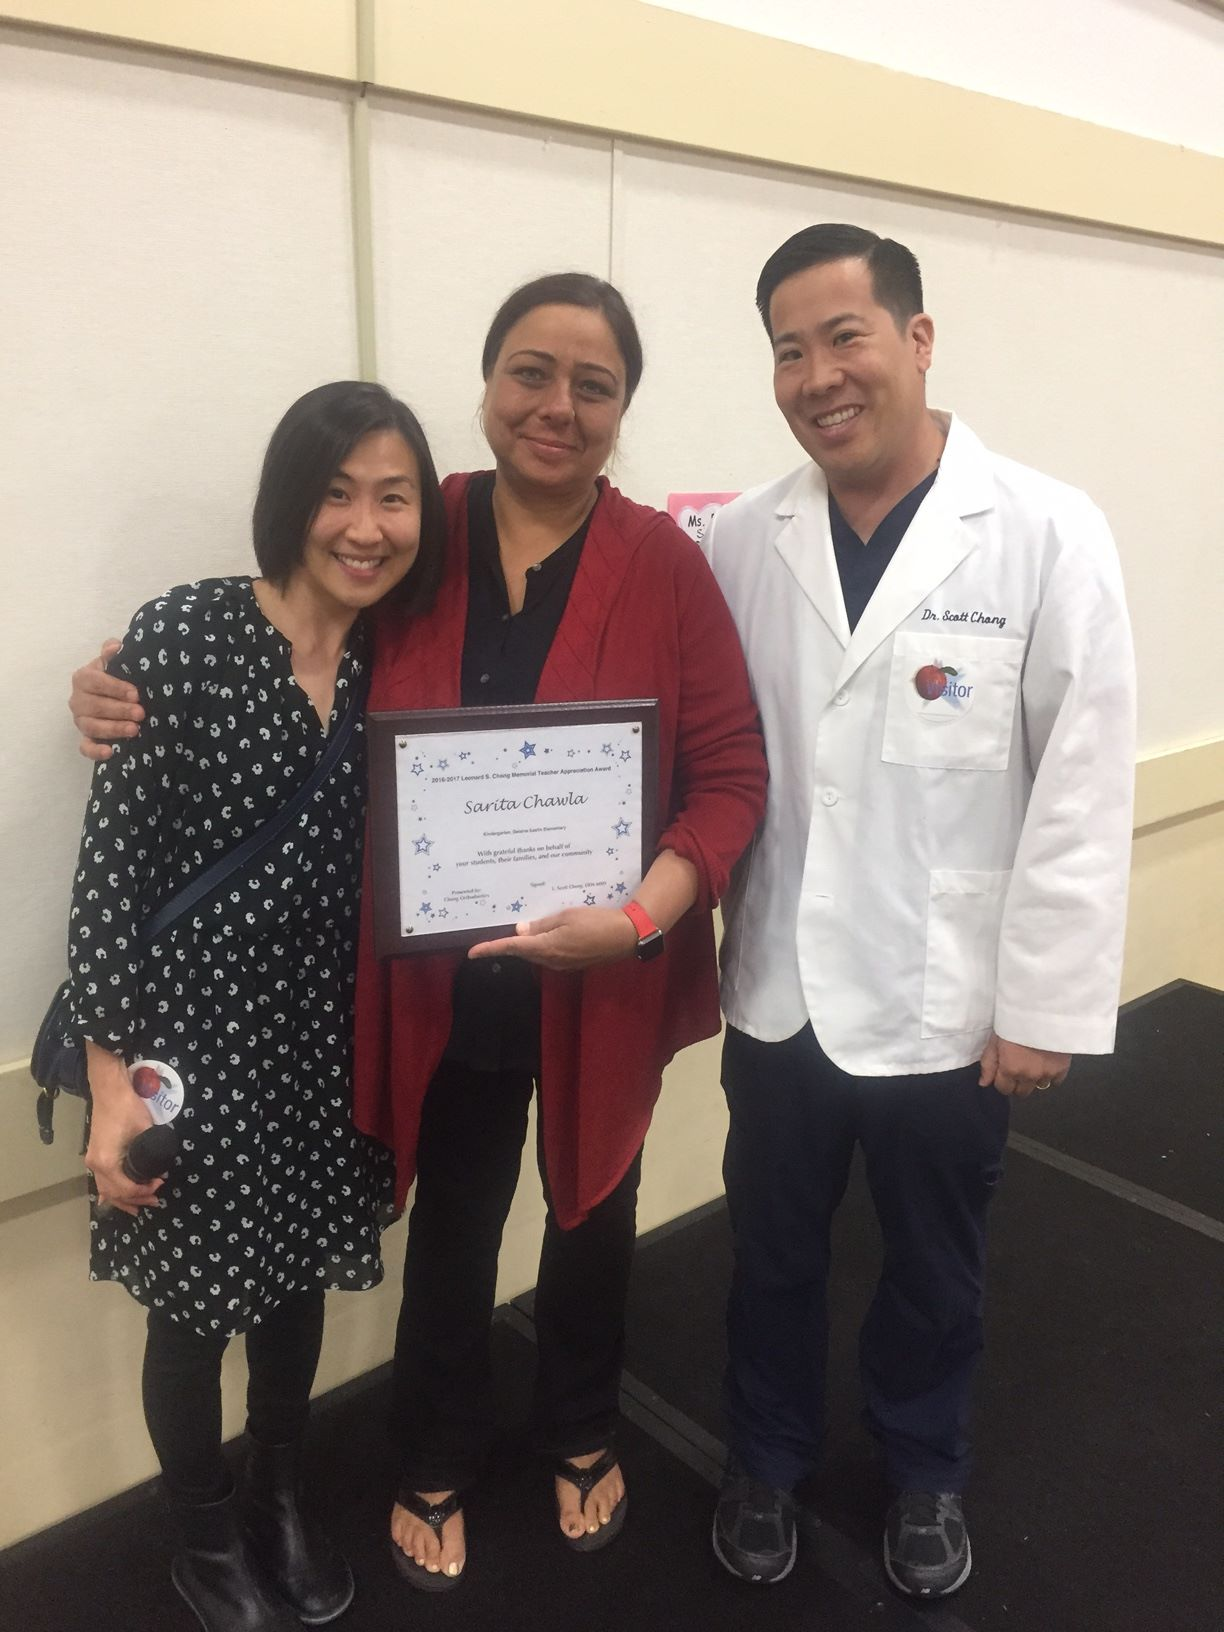 Left: The nominating parent, Mrs. Chan; Mrs. Sarita Chawla; and Dr. Scott Chong